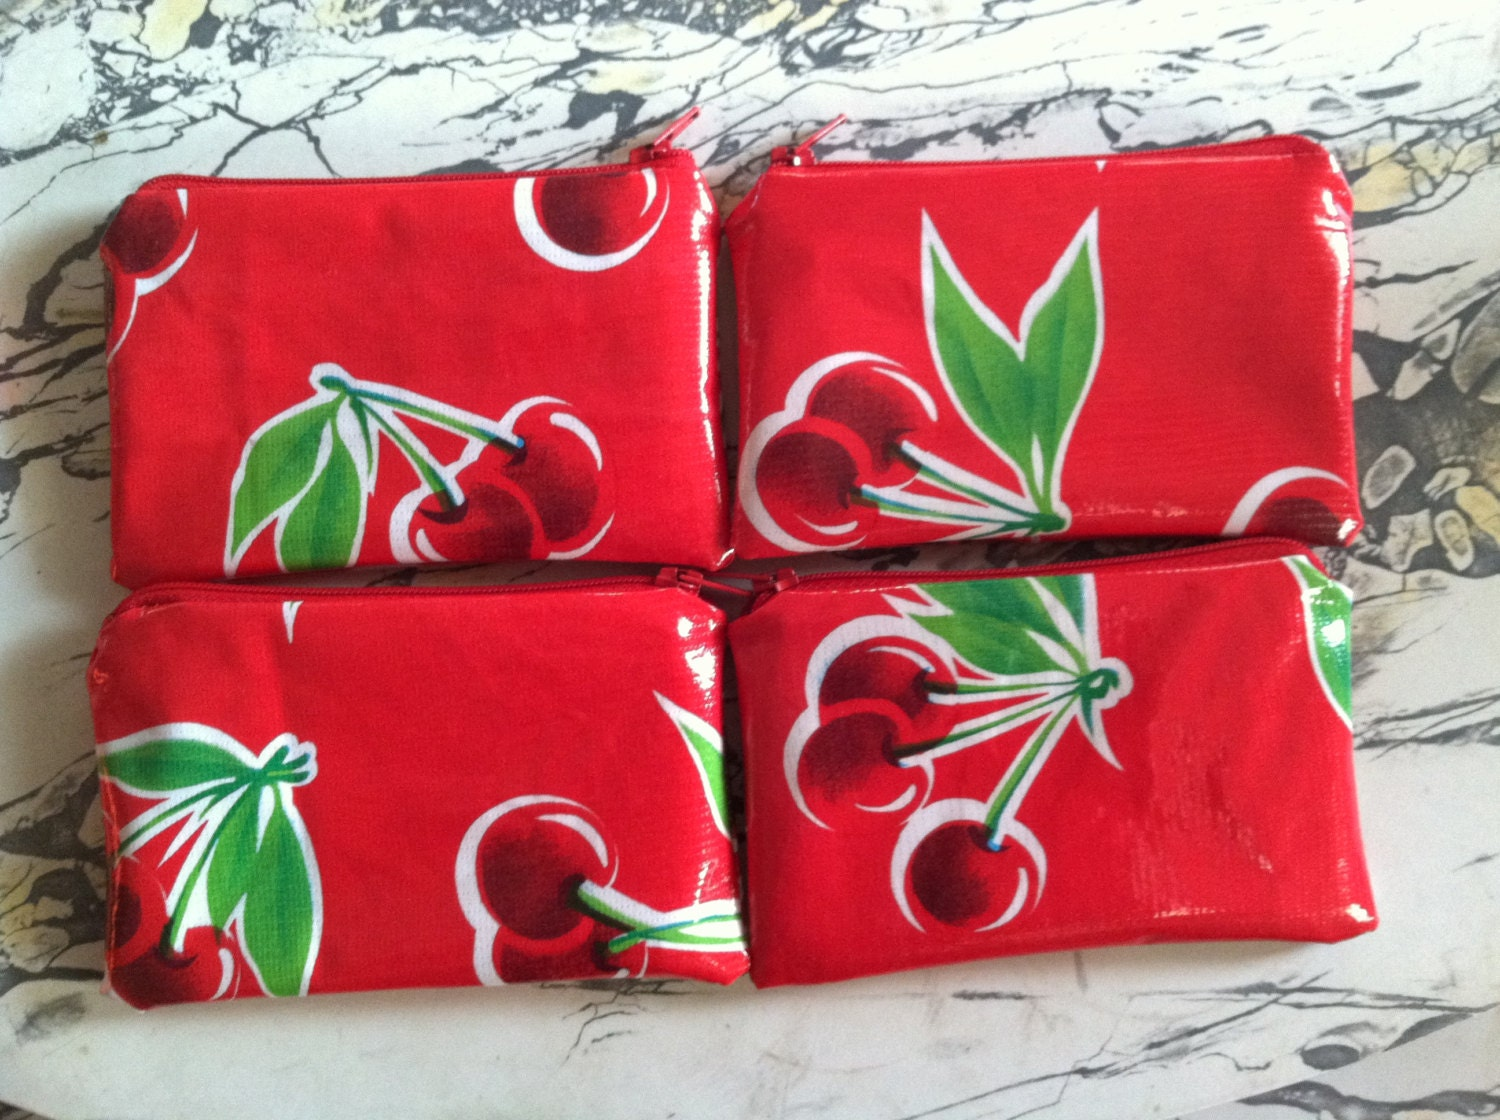 Red Cherry Retro Oilcloth Coin Purse Zipper Pouch by MiriamGarber on Etsy